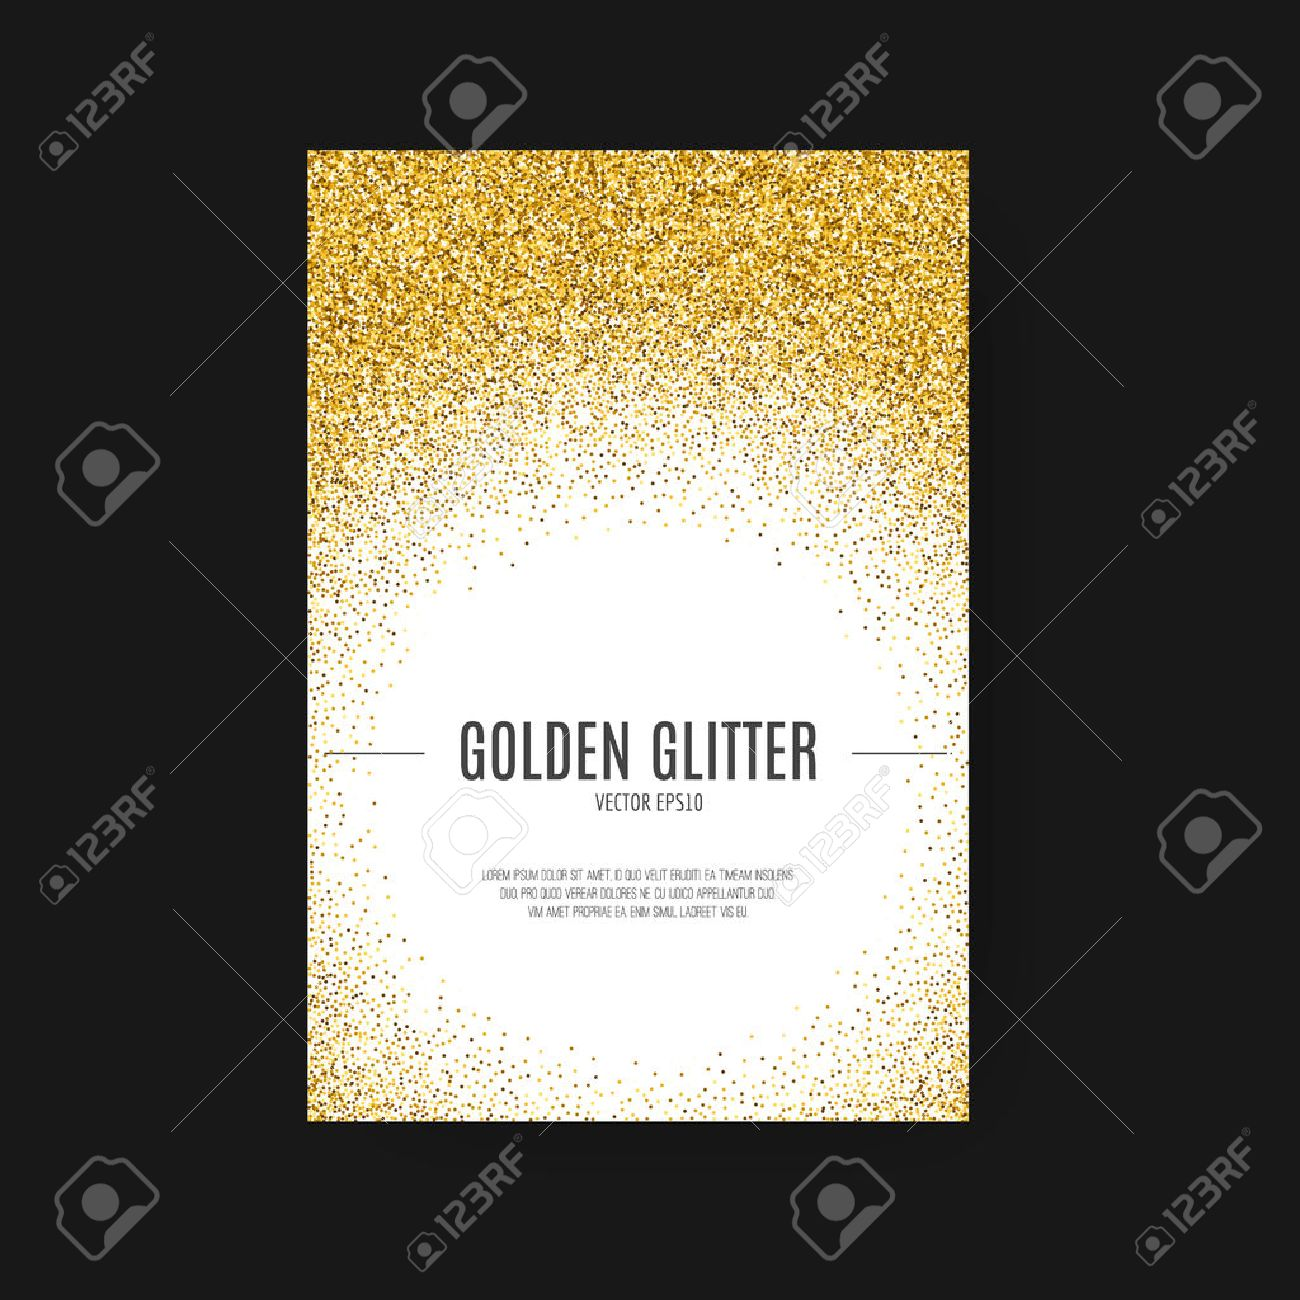 birthday invitation background designs free ; 50367341-template-for-banner-flyer-save-the-date-birthday-party-or-other-invitation-with-gold-background-gold